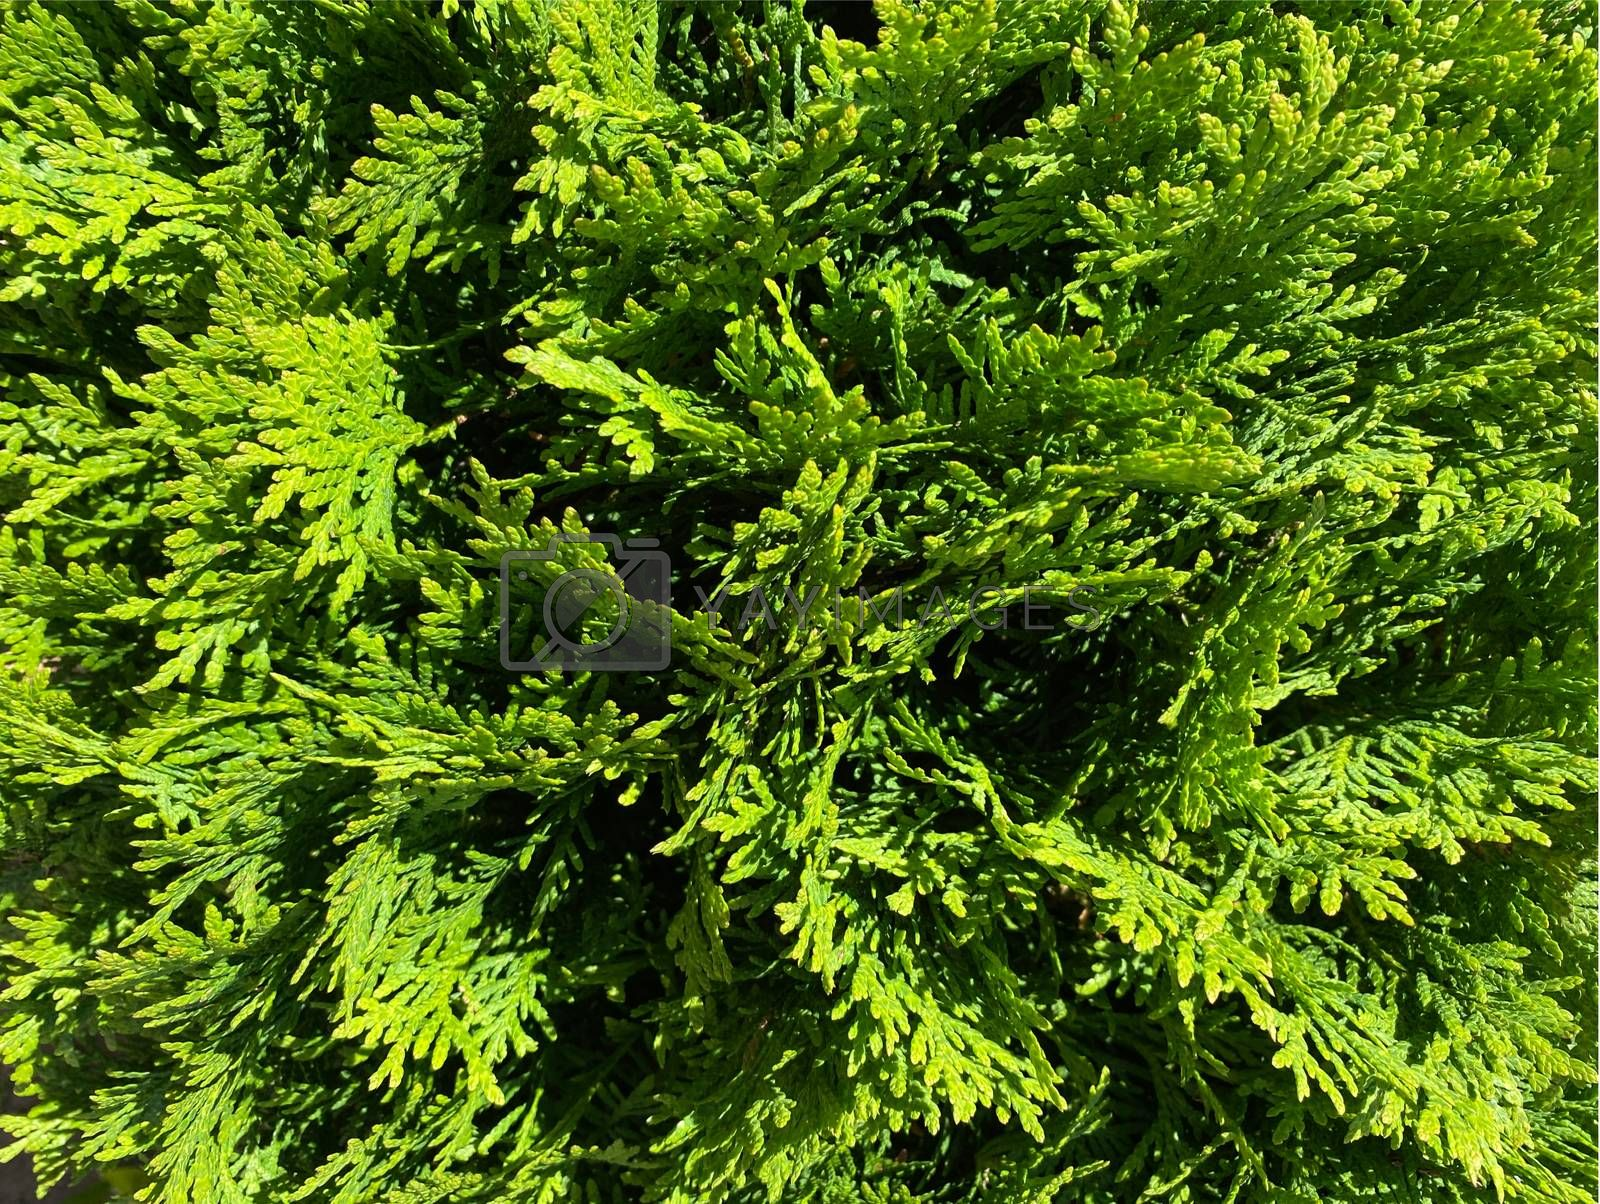 Green thuja background. Natural green texture. Evergreen leaves blurry background. Selective focus.